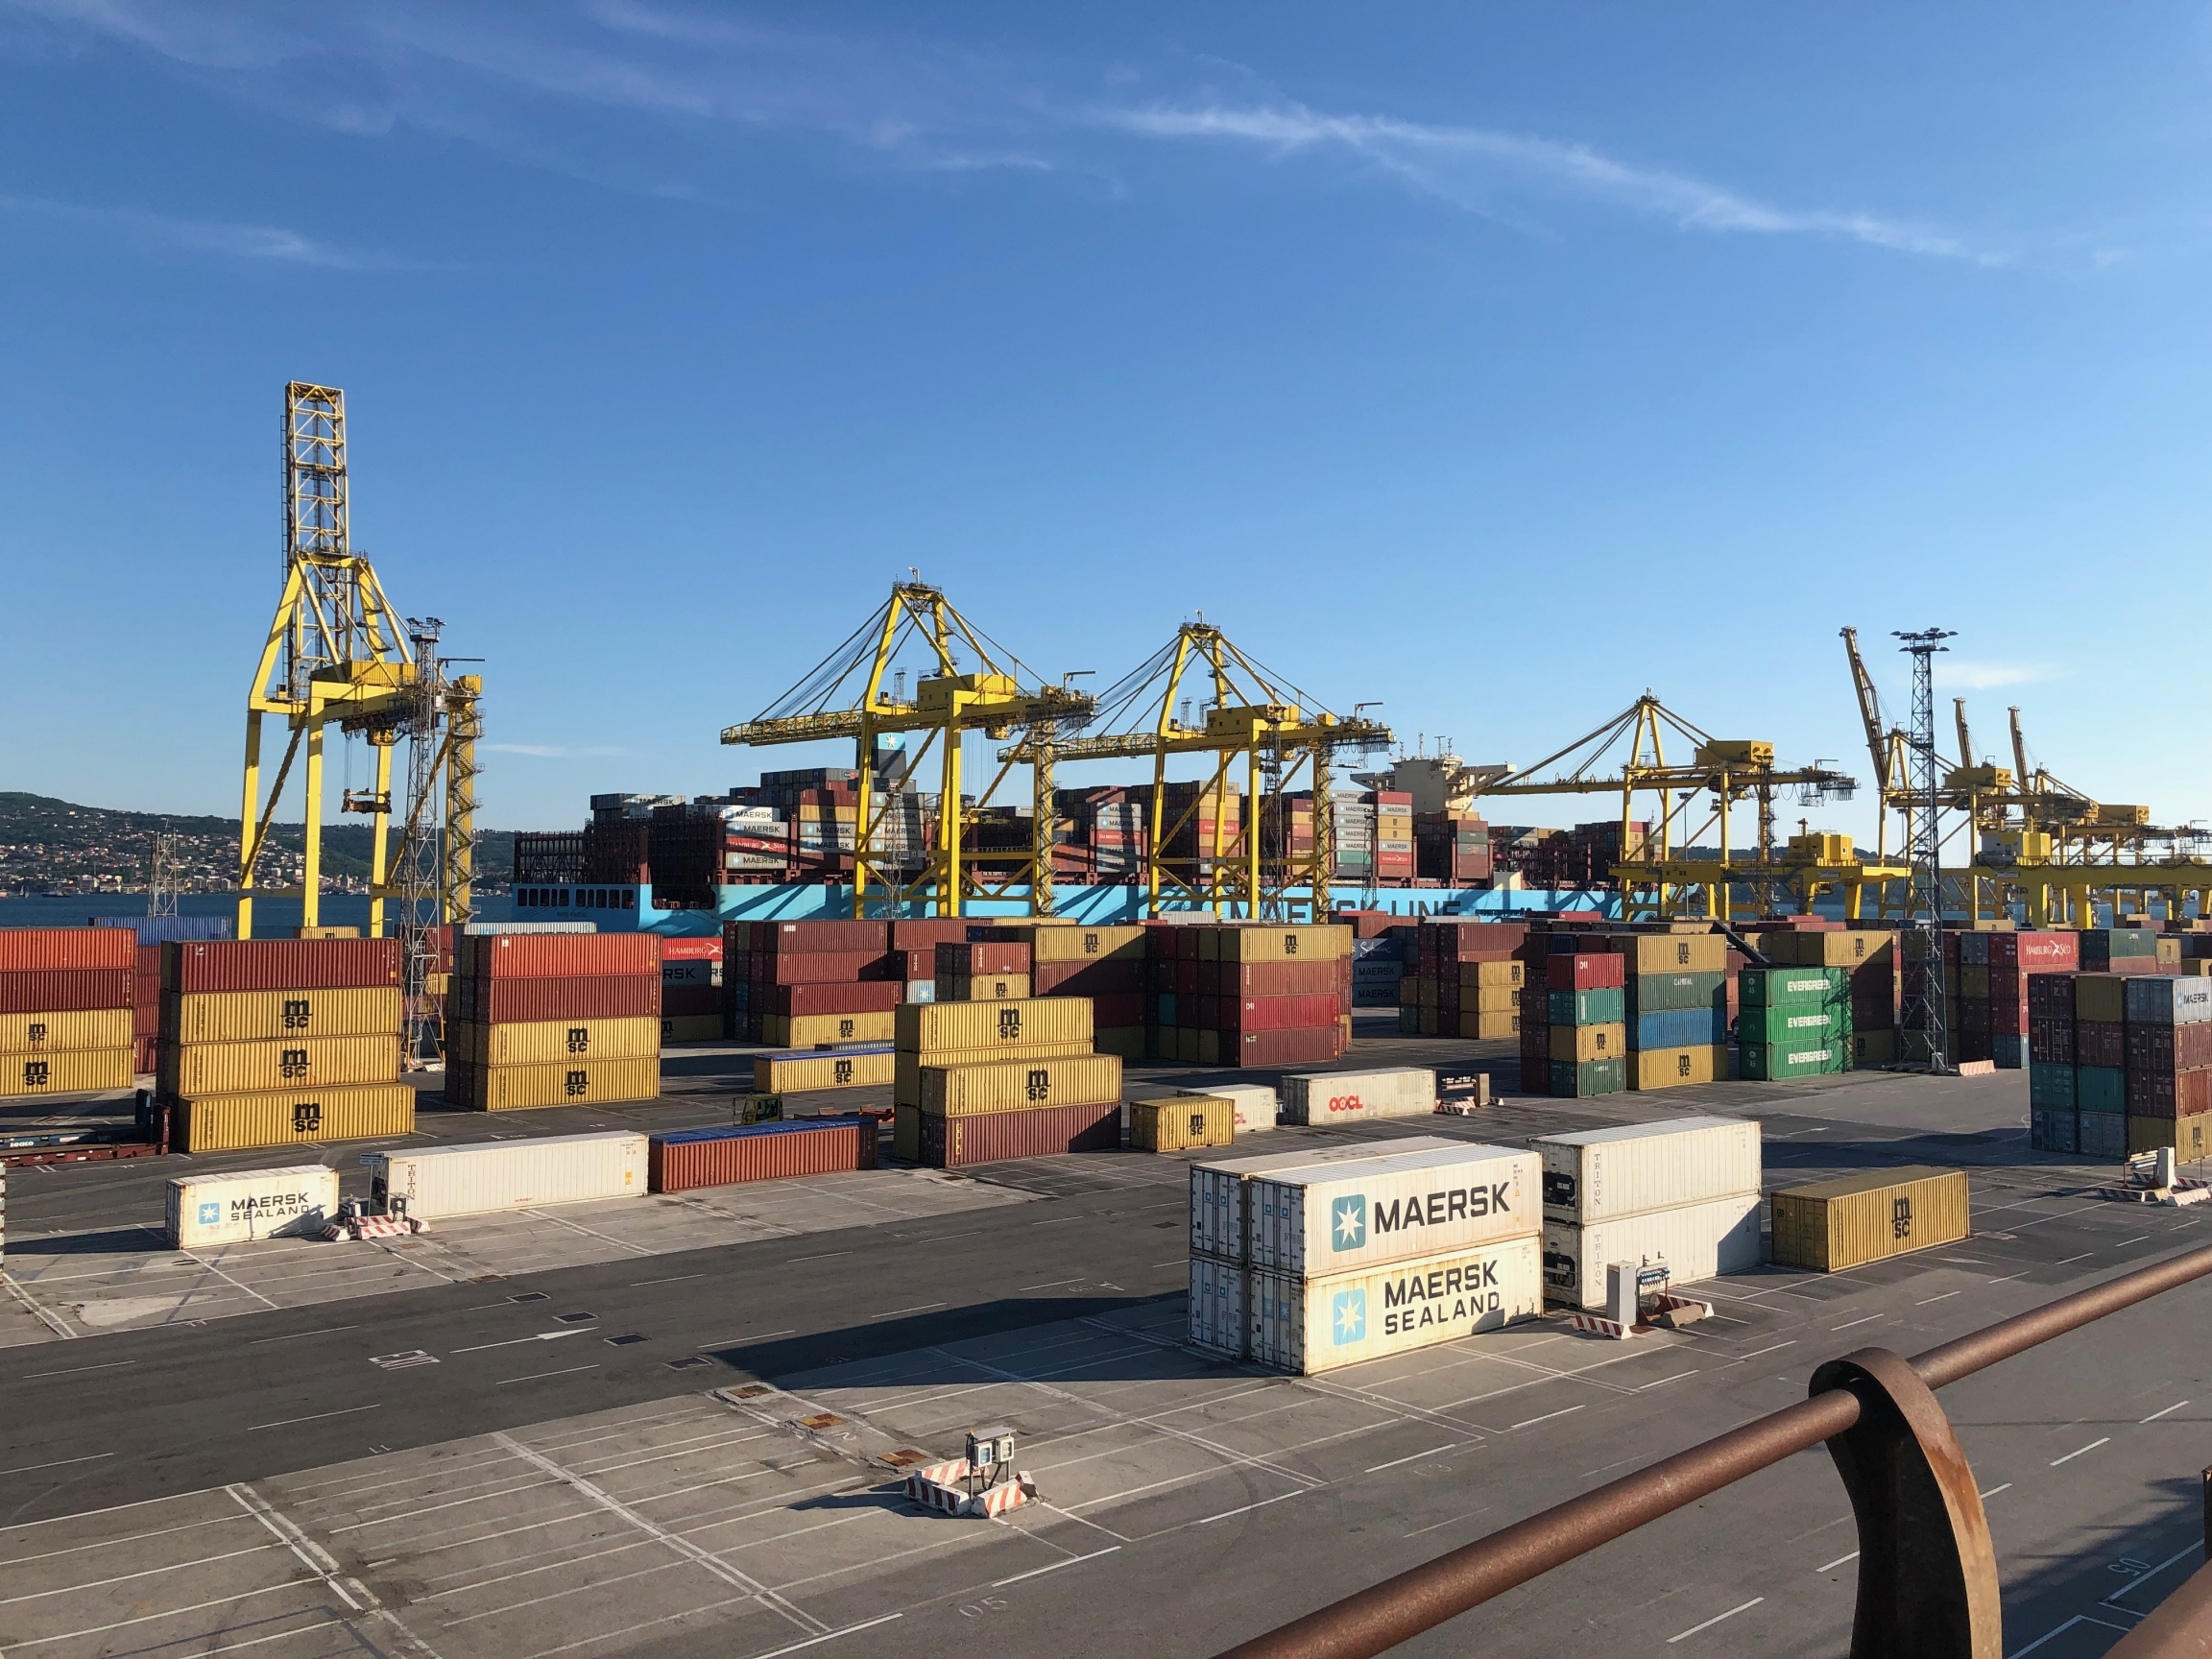 The container port in Trieste, Italy.